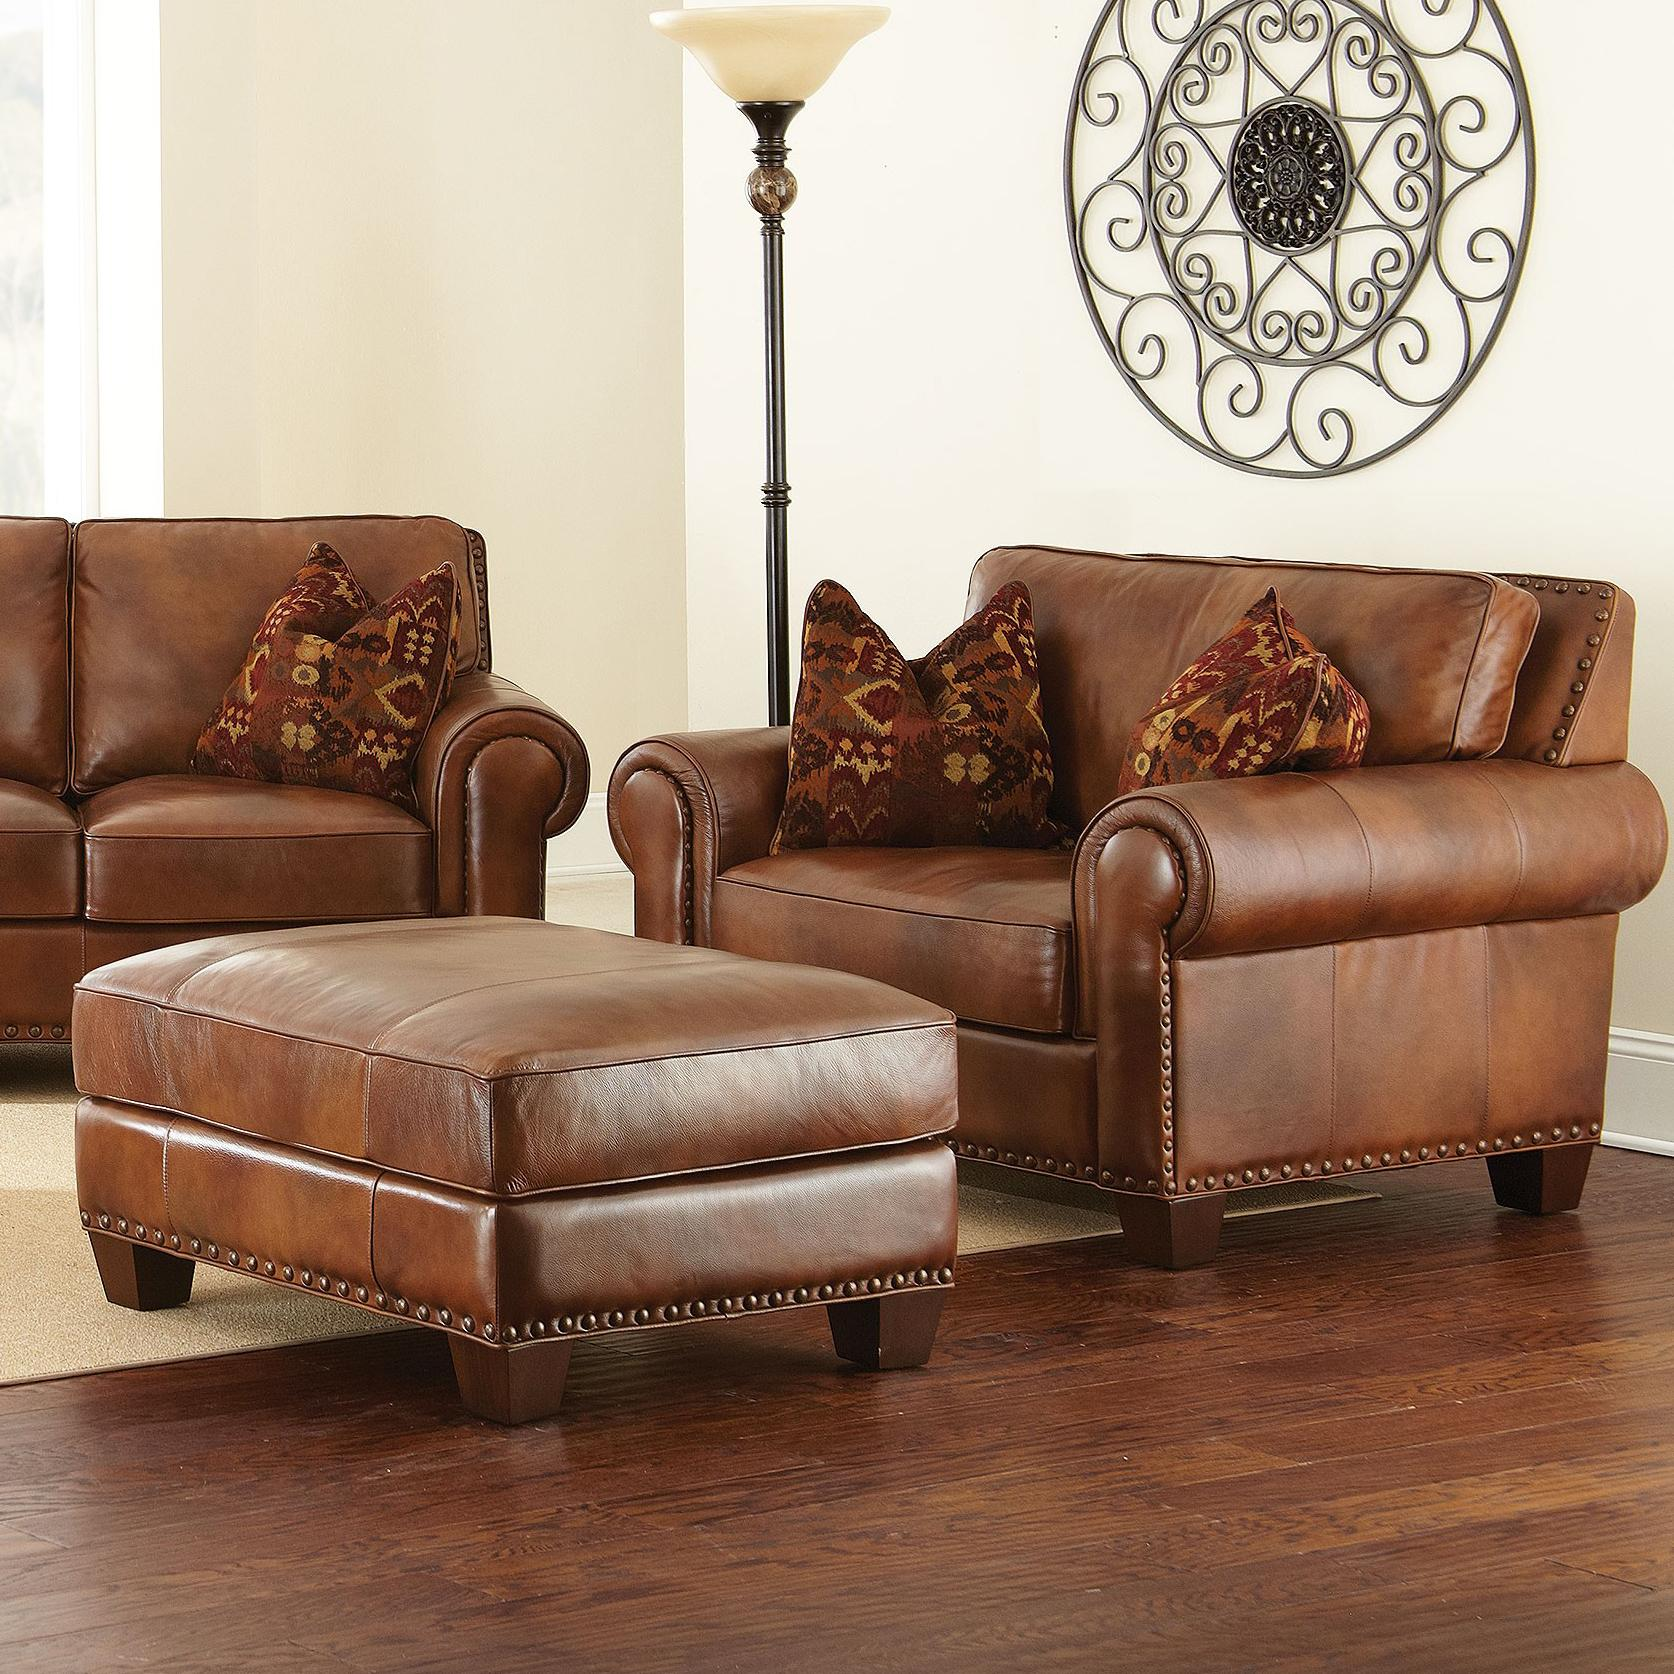 Leather Chairs With Ottoman Silverado Chair And A Half With Ottoman And Nailhead Trim By Vendor 3985 At Becker Furniture World